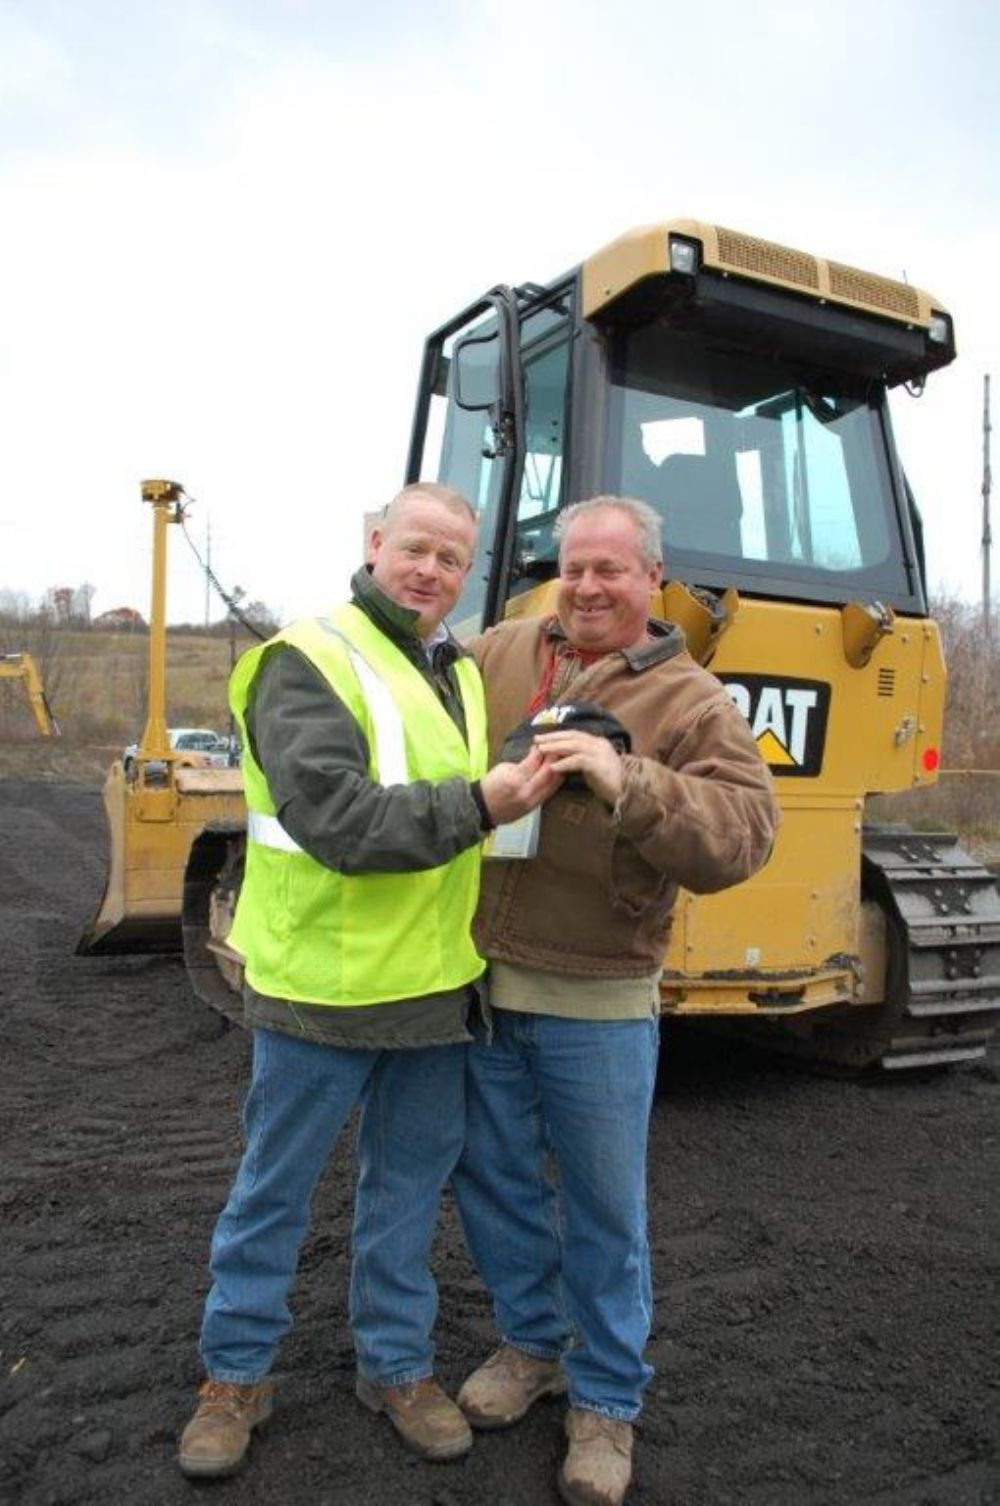 Gary Fisher (R) of Fisher Construction in Liverpool, N.Y., recently purchased one of these Cat D5 dozers equipped with Sitech technology. It's hard to tell which he is more excited about, the dozer or the complementary Cat hat he received from his M